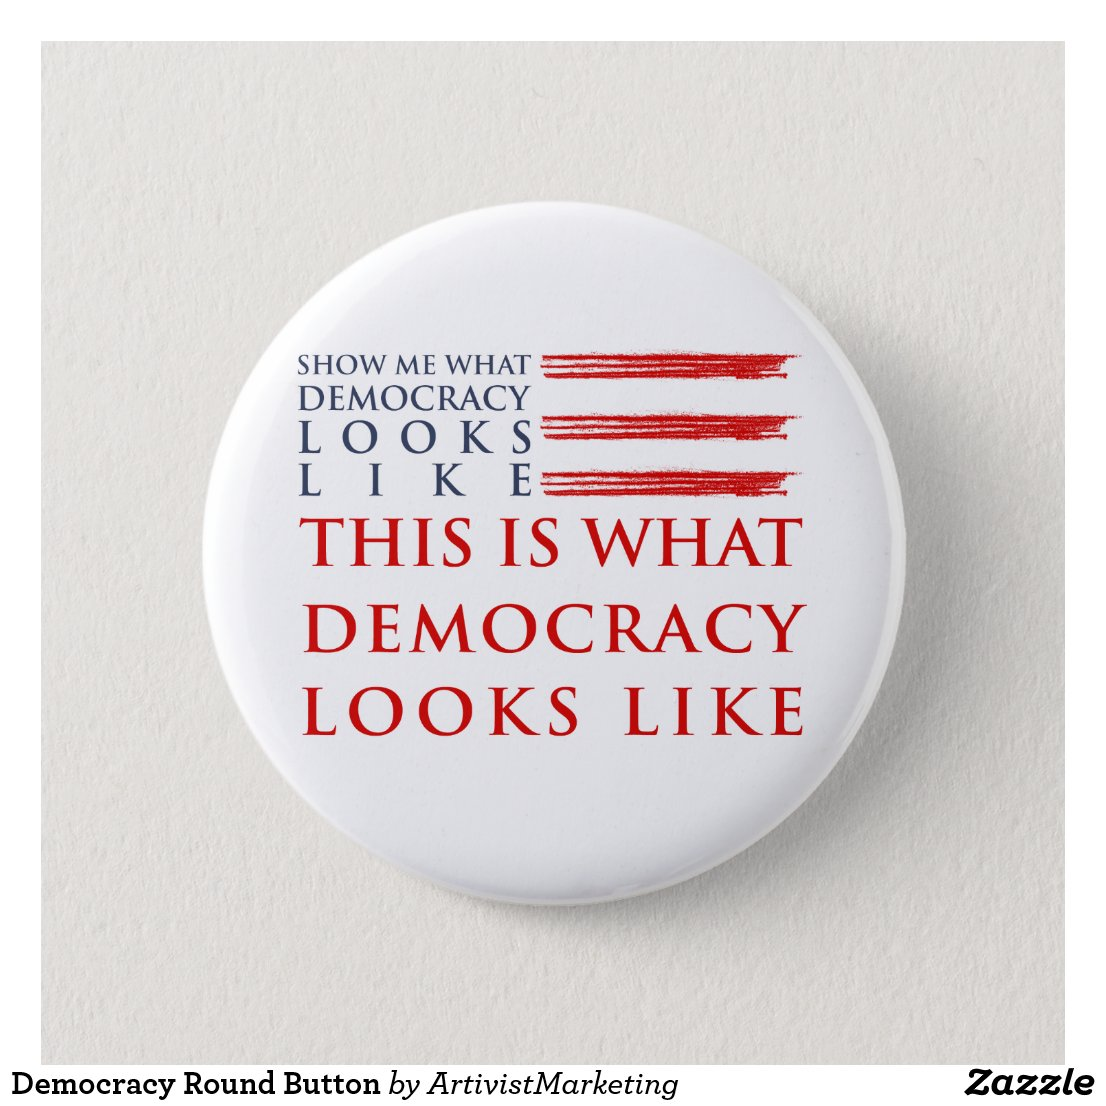 Democracy Round Button